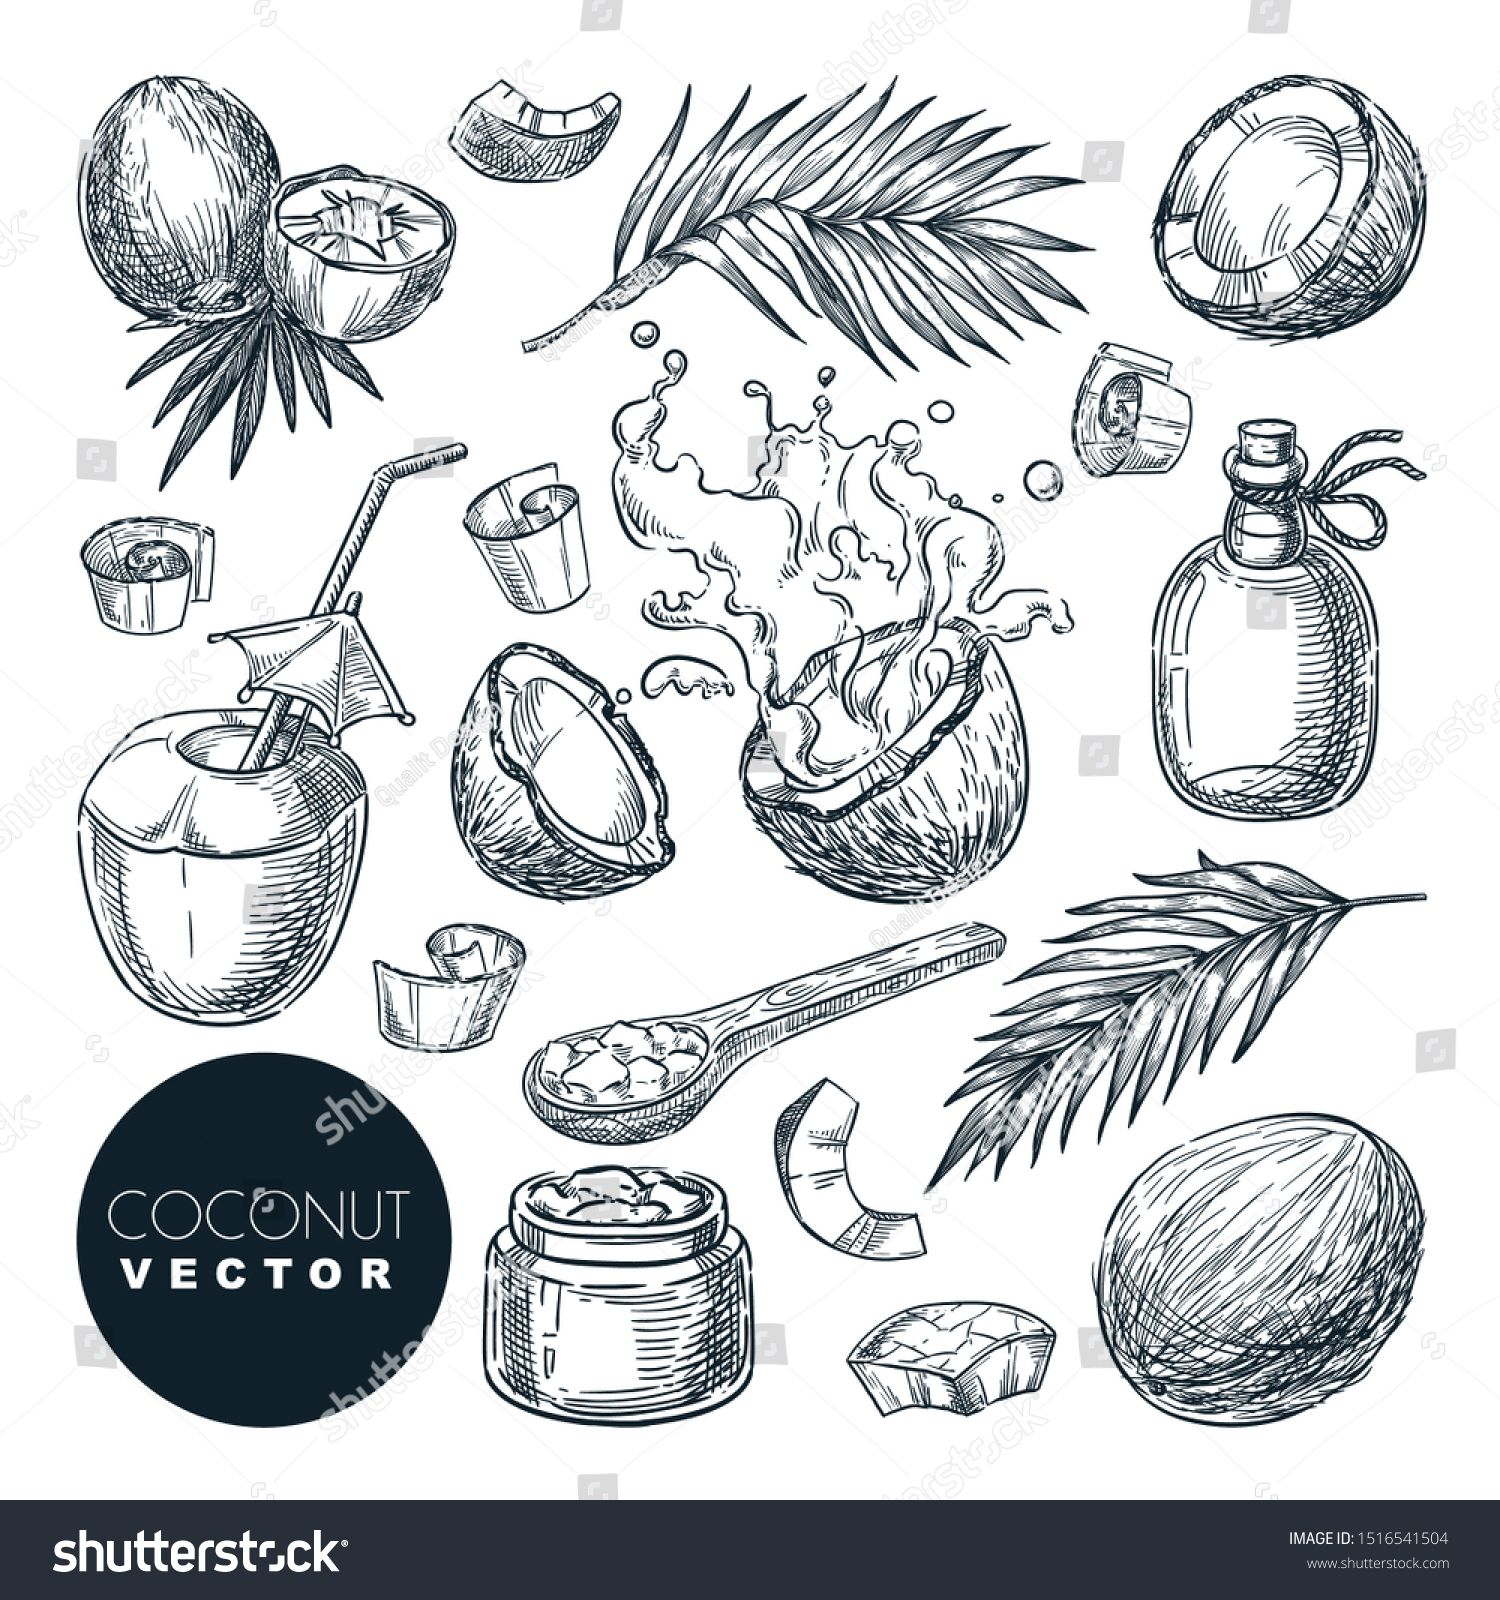 Coconut Sketch Vector Illustration Broken Coco Nuts With Milk Splashes Butter Oil And Palm Leaves Ha Illustration Vector Illustration Drawing Illustrations